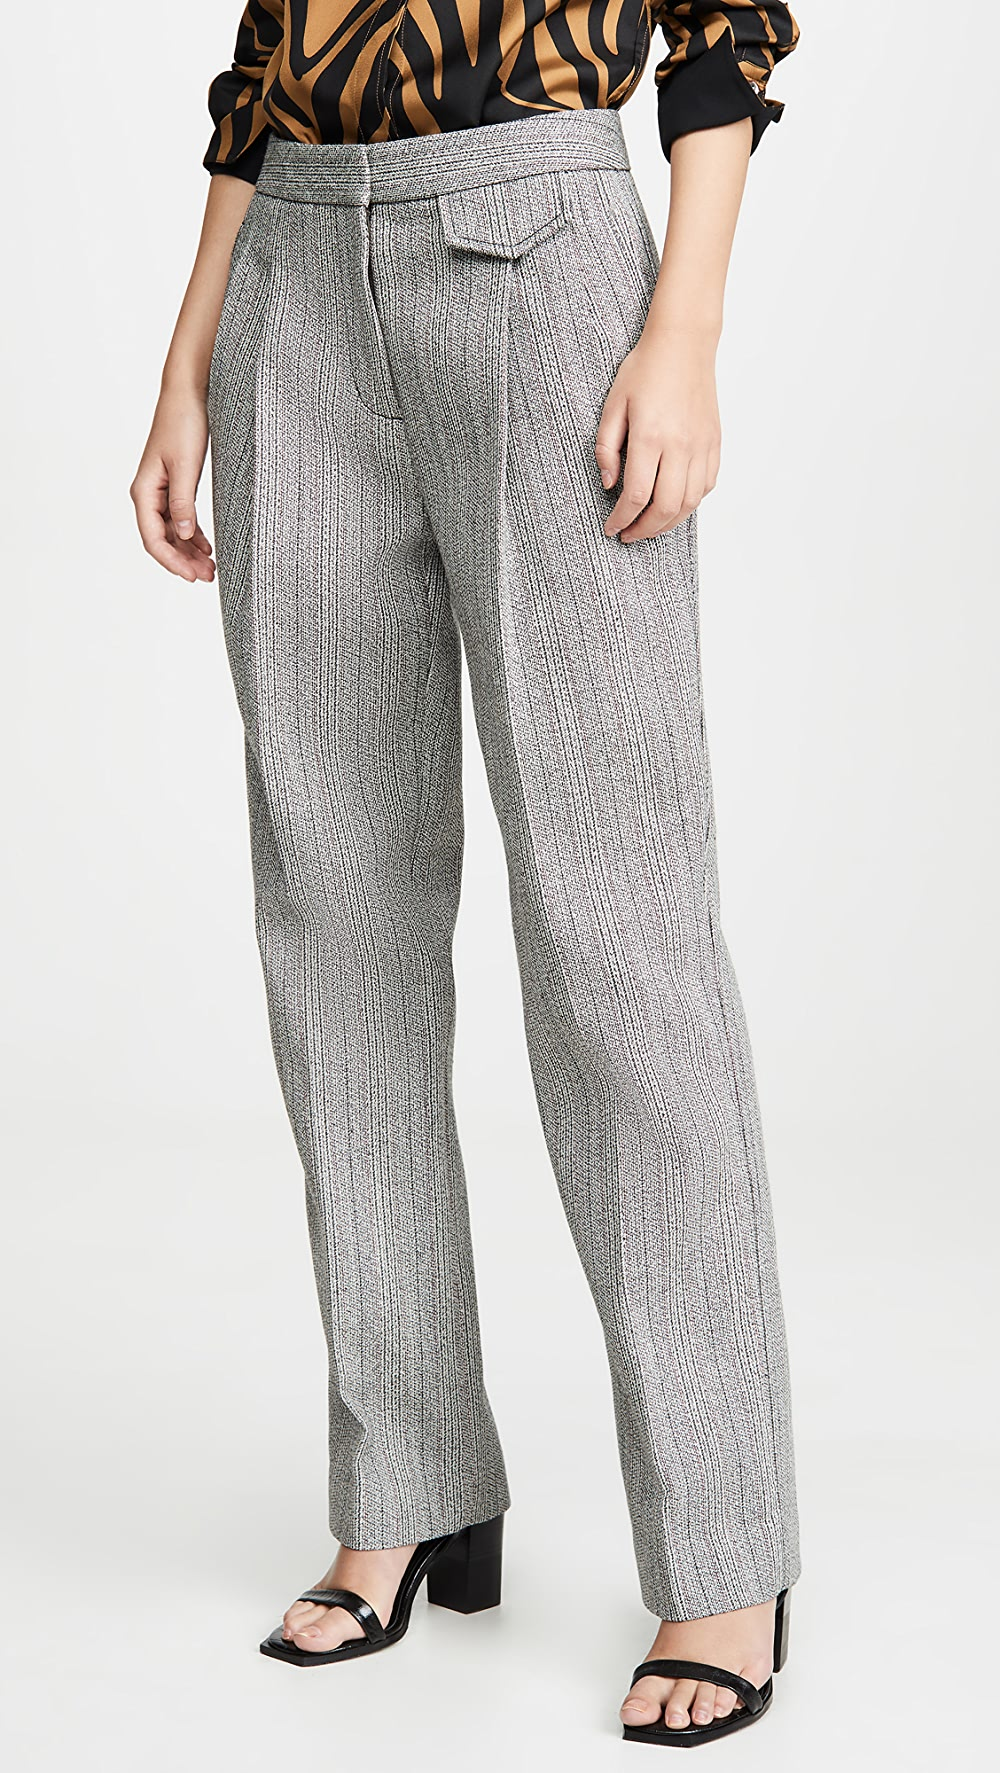 2019 Fashion 3.1 Phillip Lim - Full Length Tweed Pants Ideal Gift For All Occasions